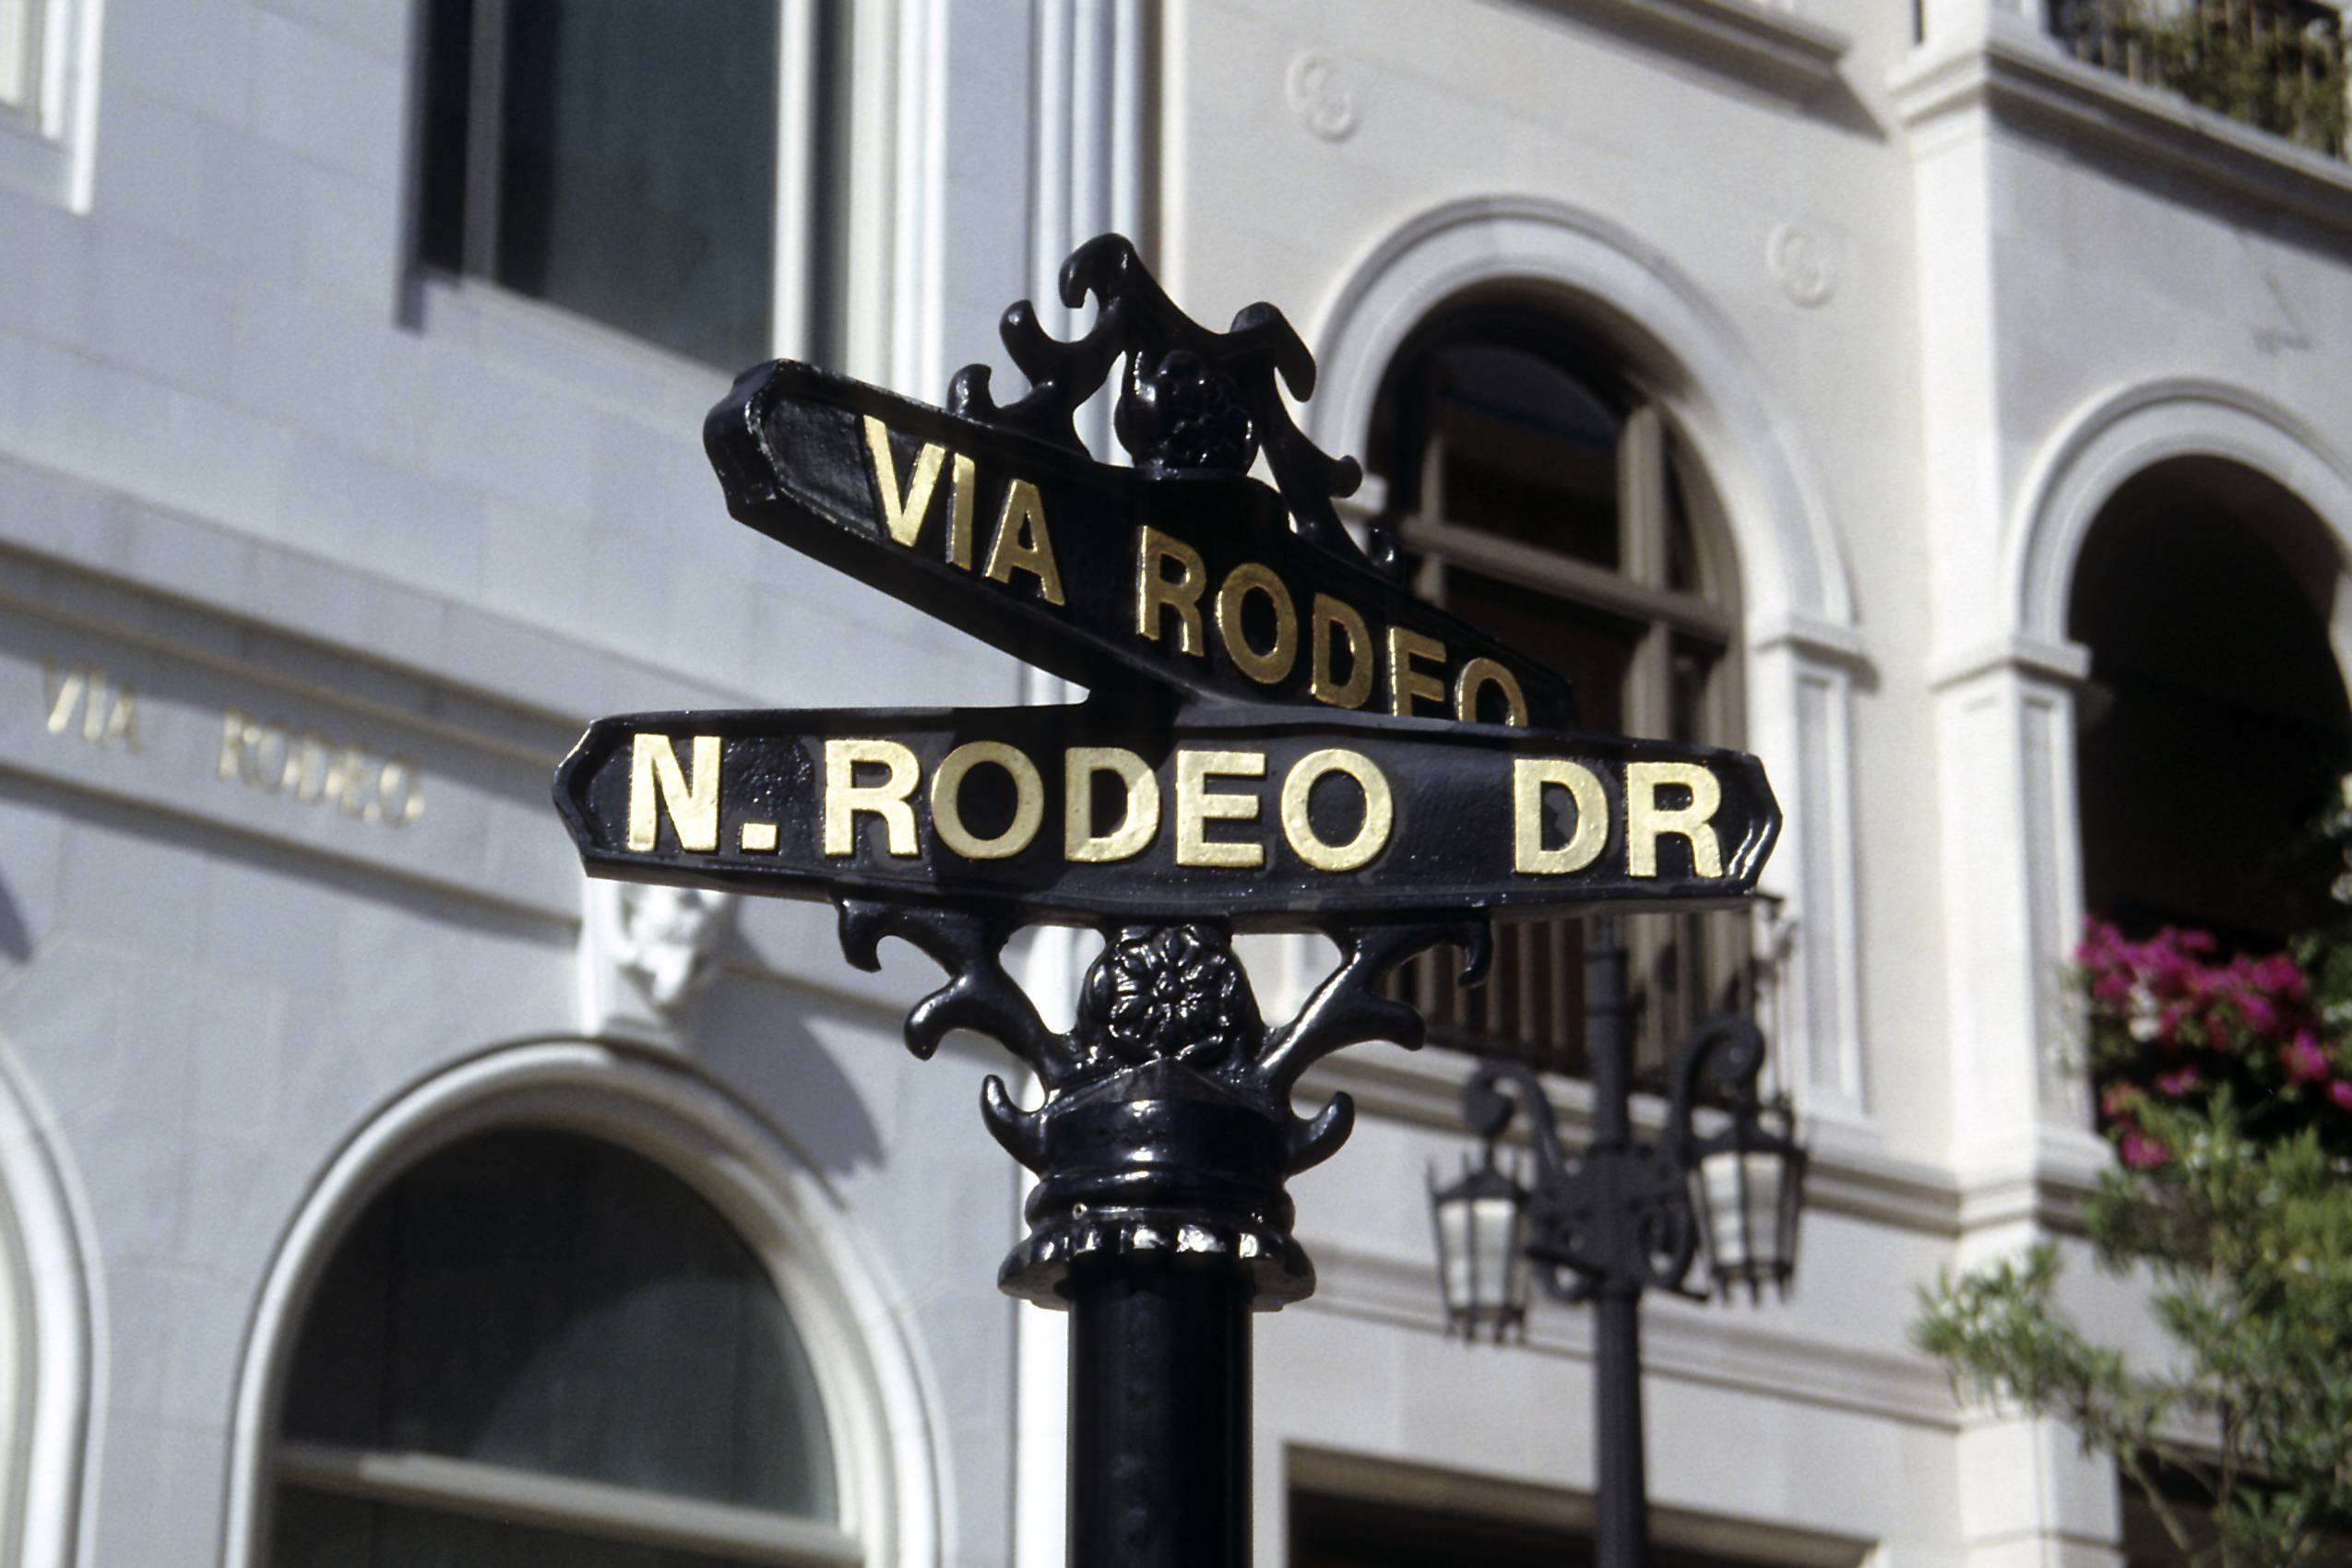 Image courtesy of Rodeo Drive, the City of Beverly Hills